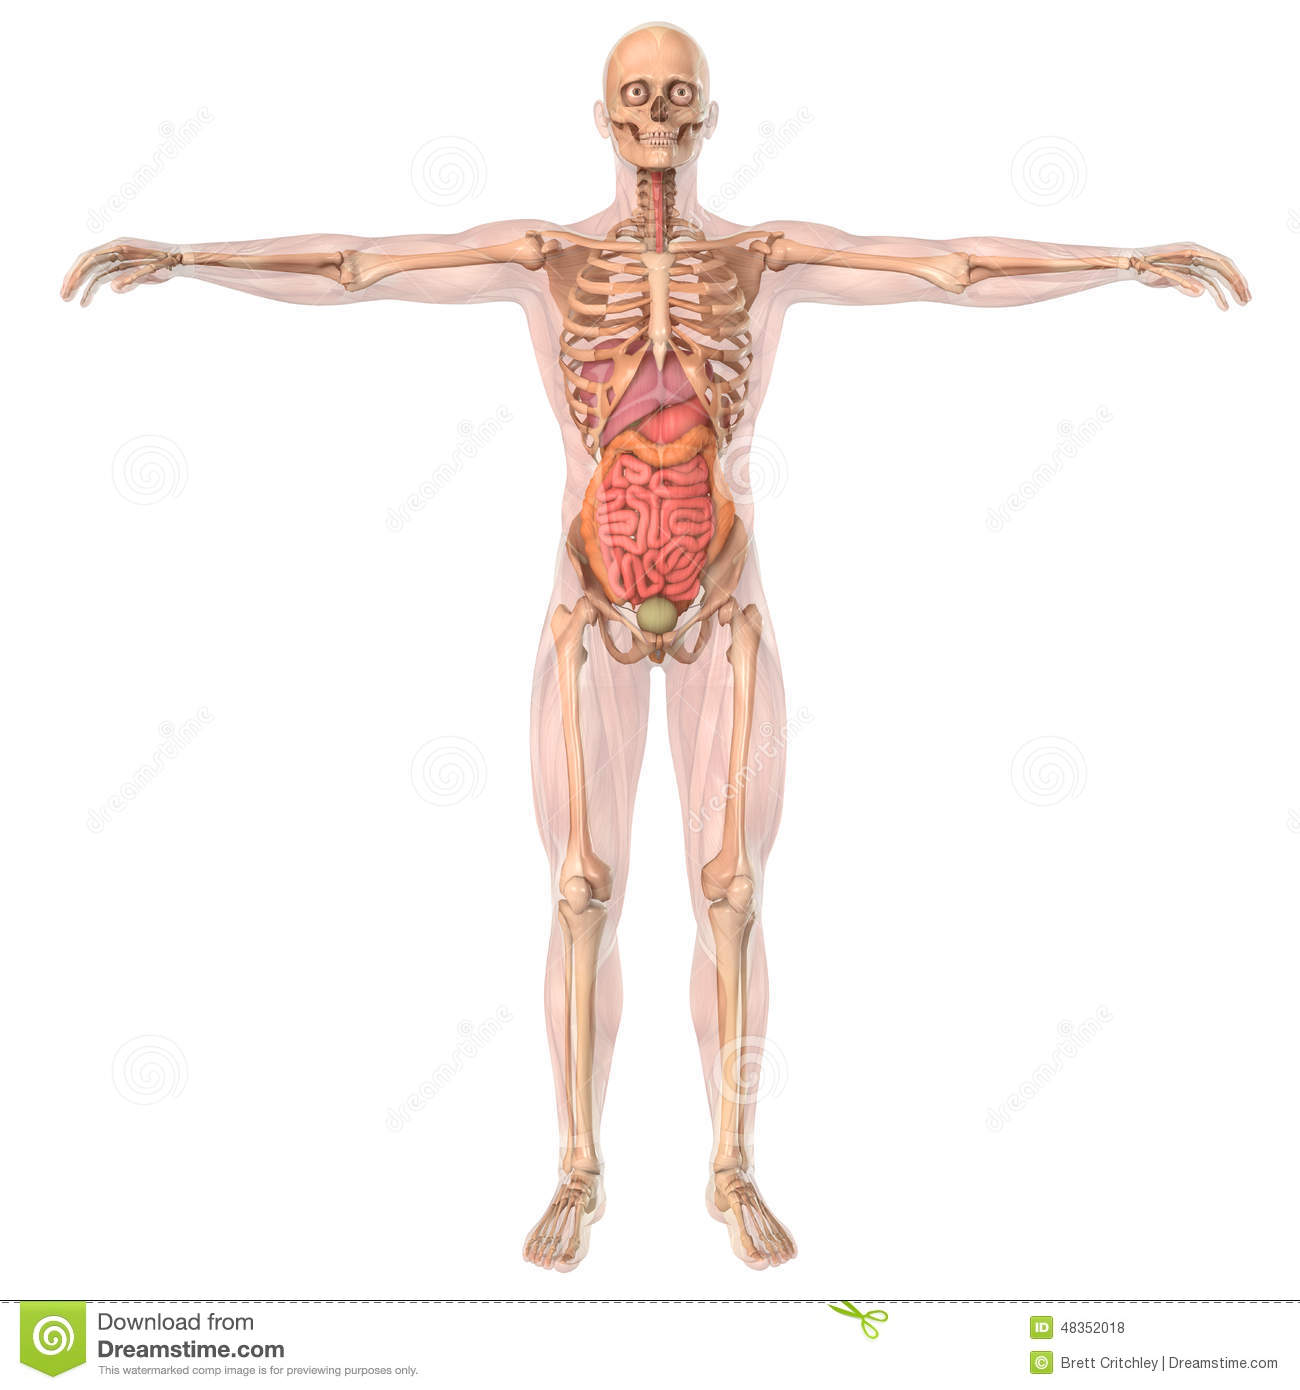 Human anatomy skeleton and organs stock illustration illustration download human anatomy skeleton and organs stock illustration illustration of skeleton skull 48352018 ccuart Images